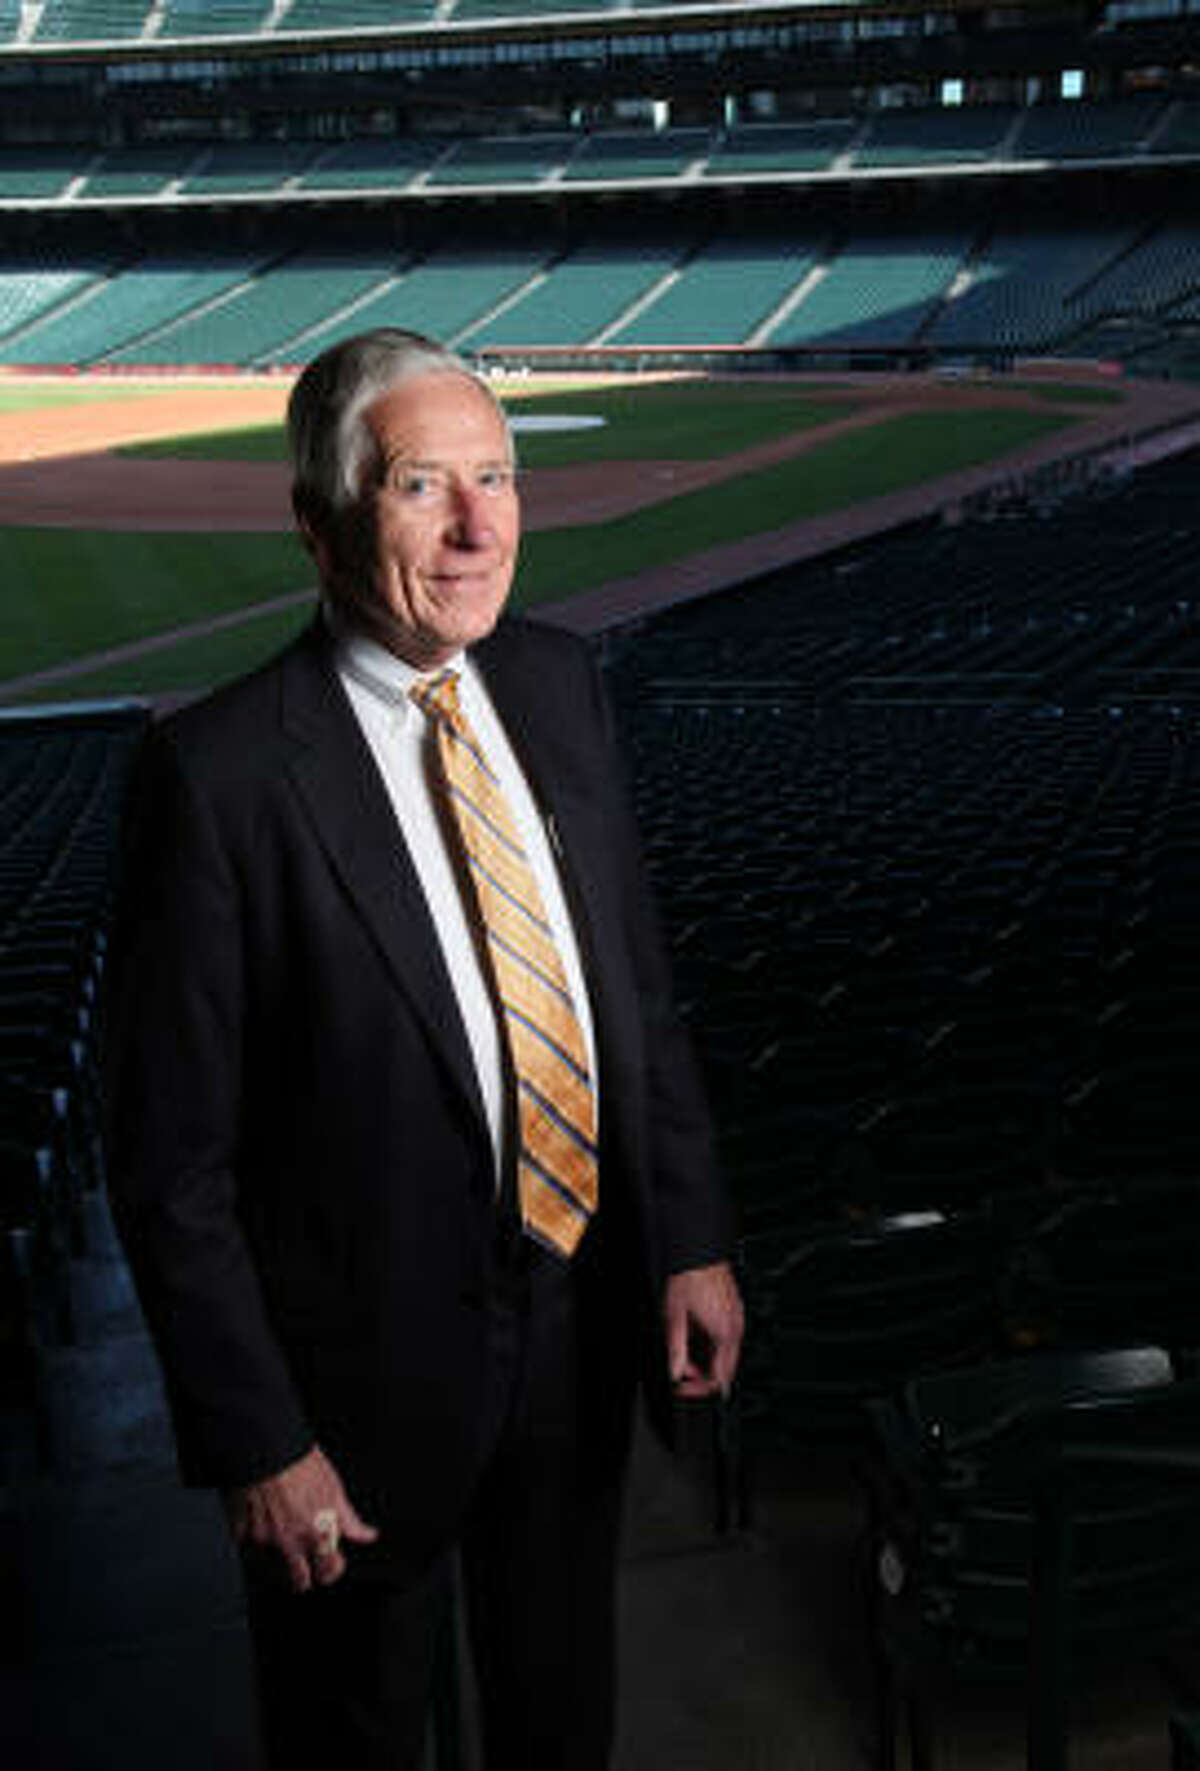 """Drayton McLane says owning the Astros has """"enriched my life."""" Now he's preparing to relinquish center stage at Minute Maid Park."""